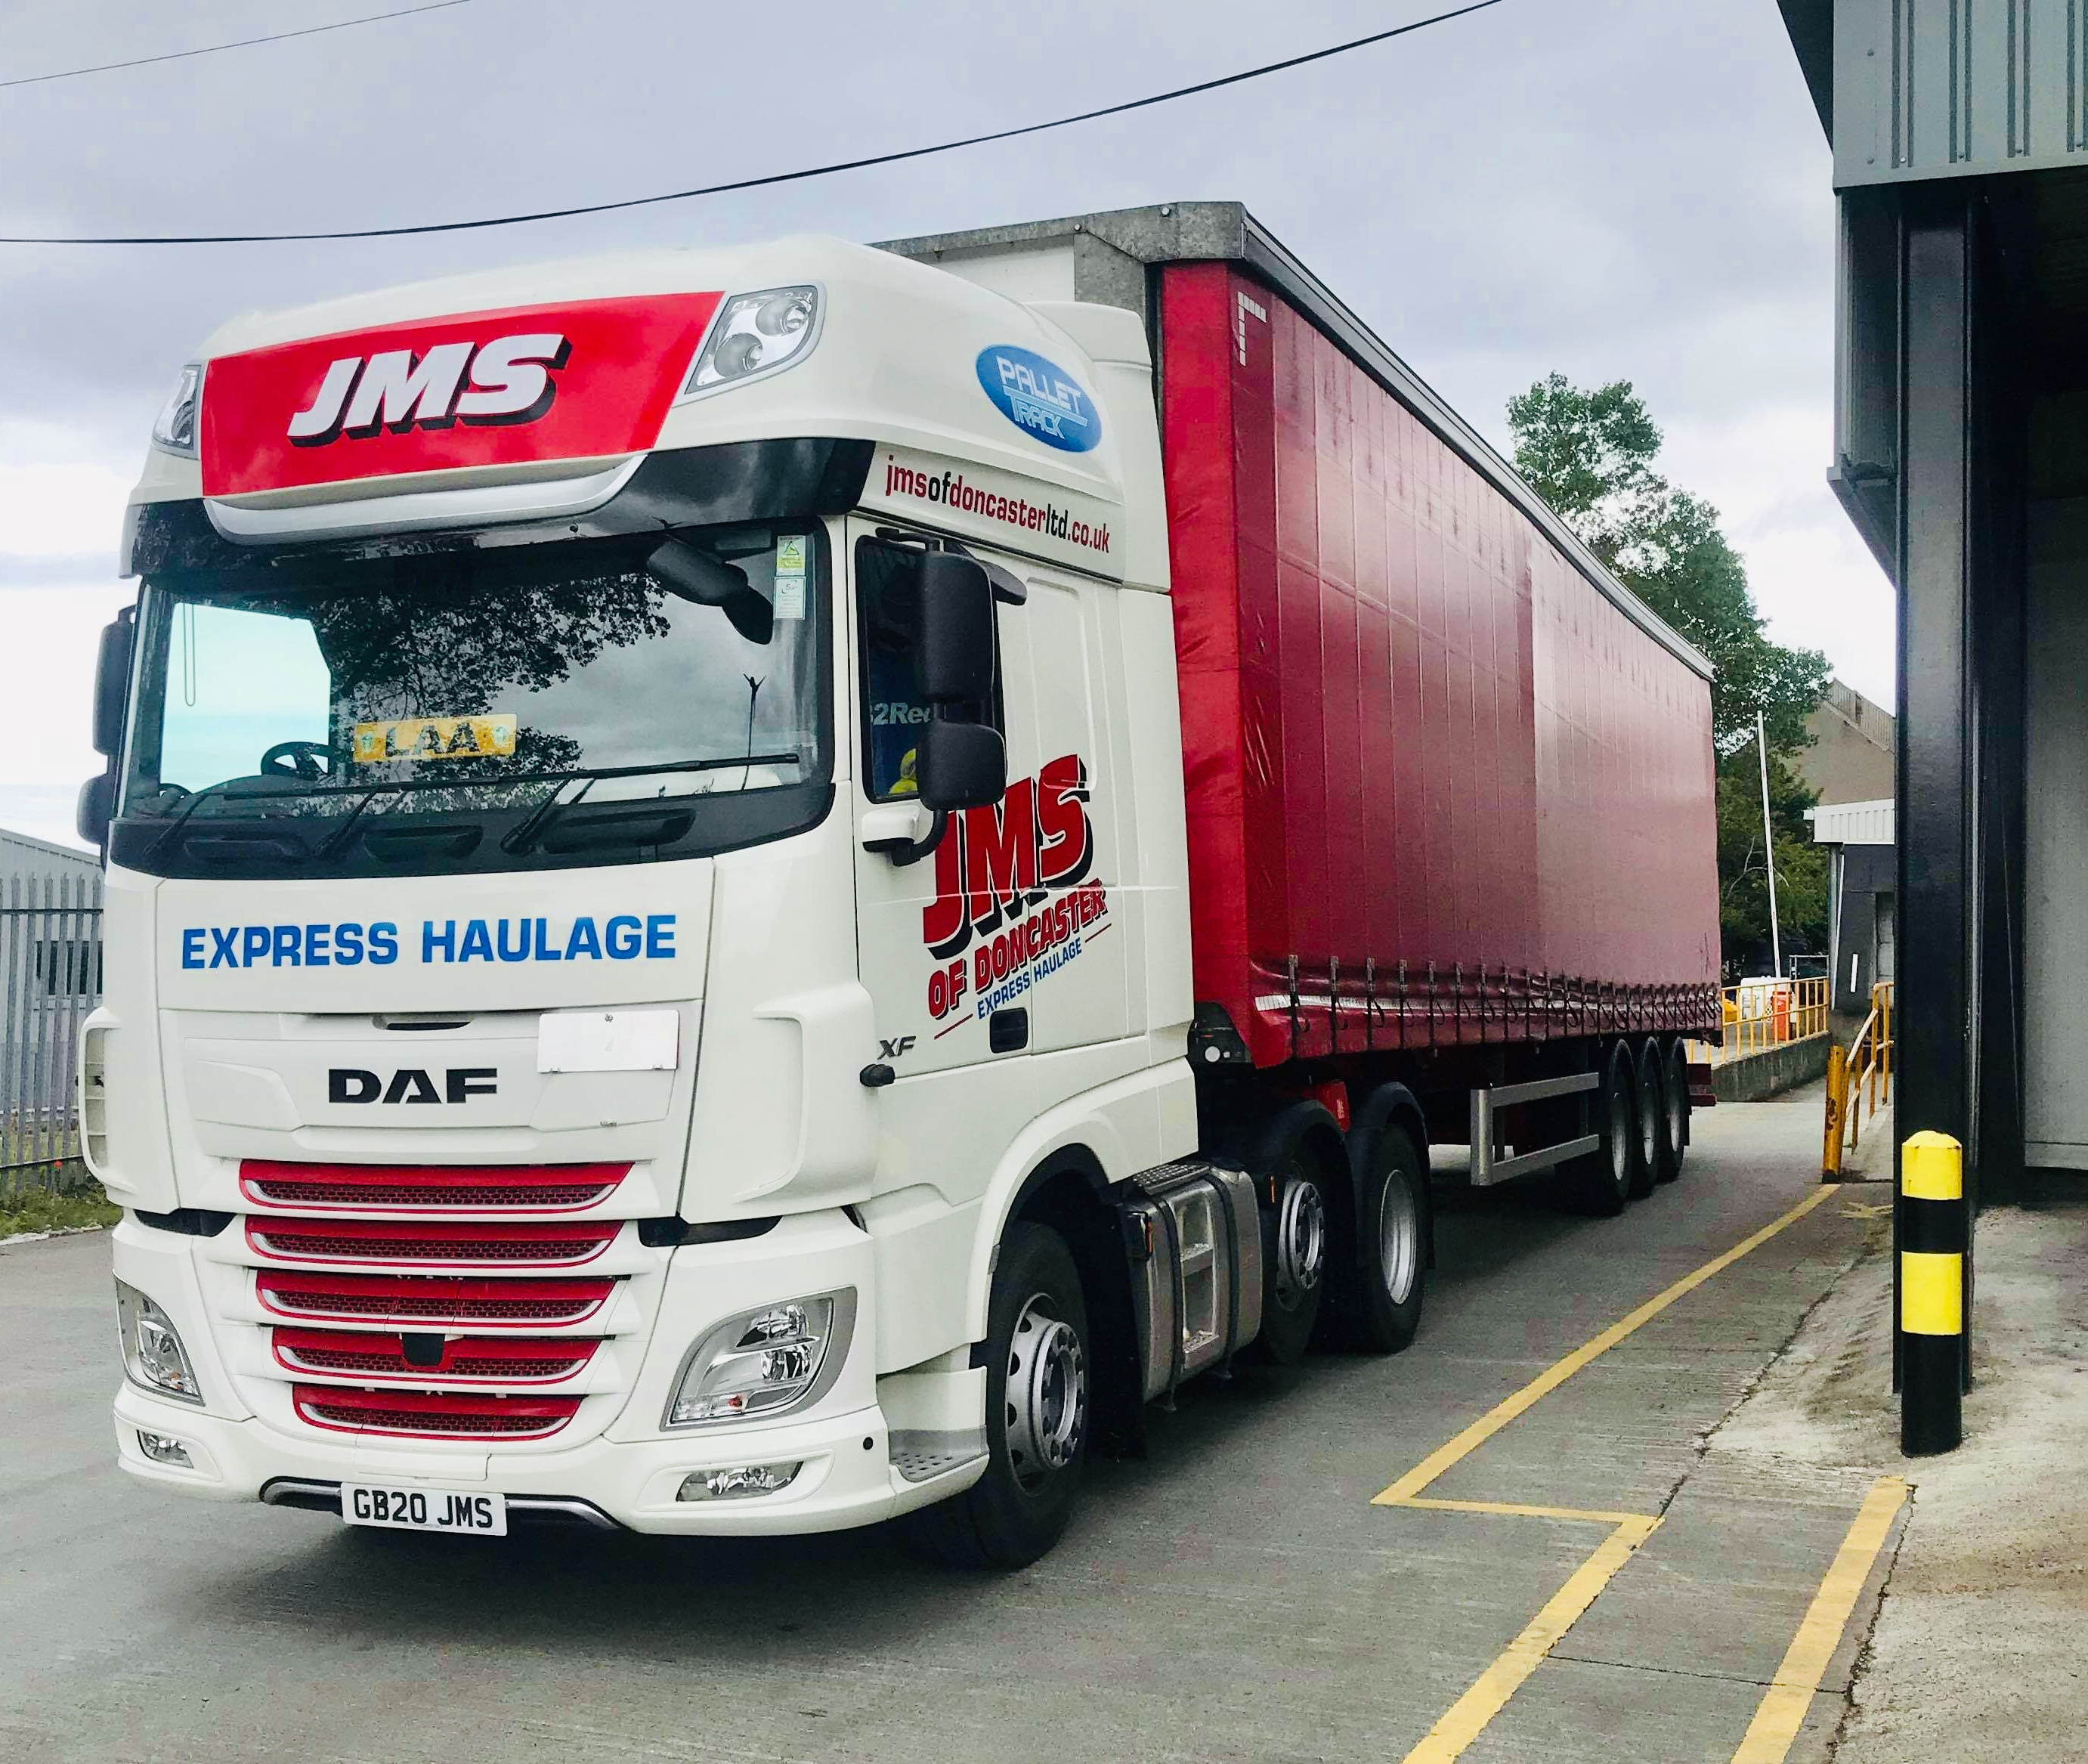 JMS of Doncaster new vehicle